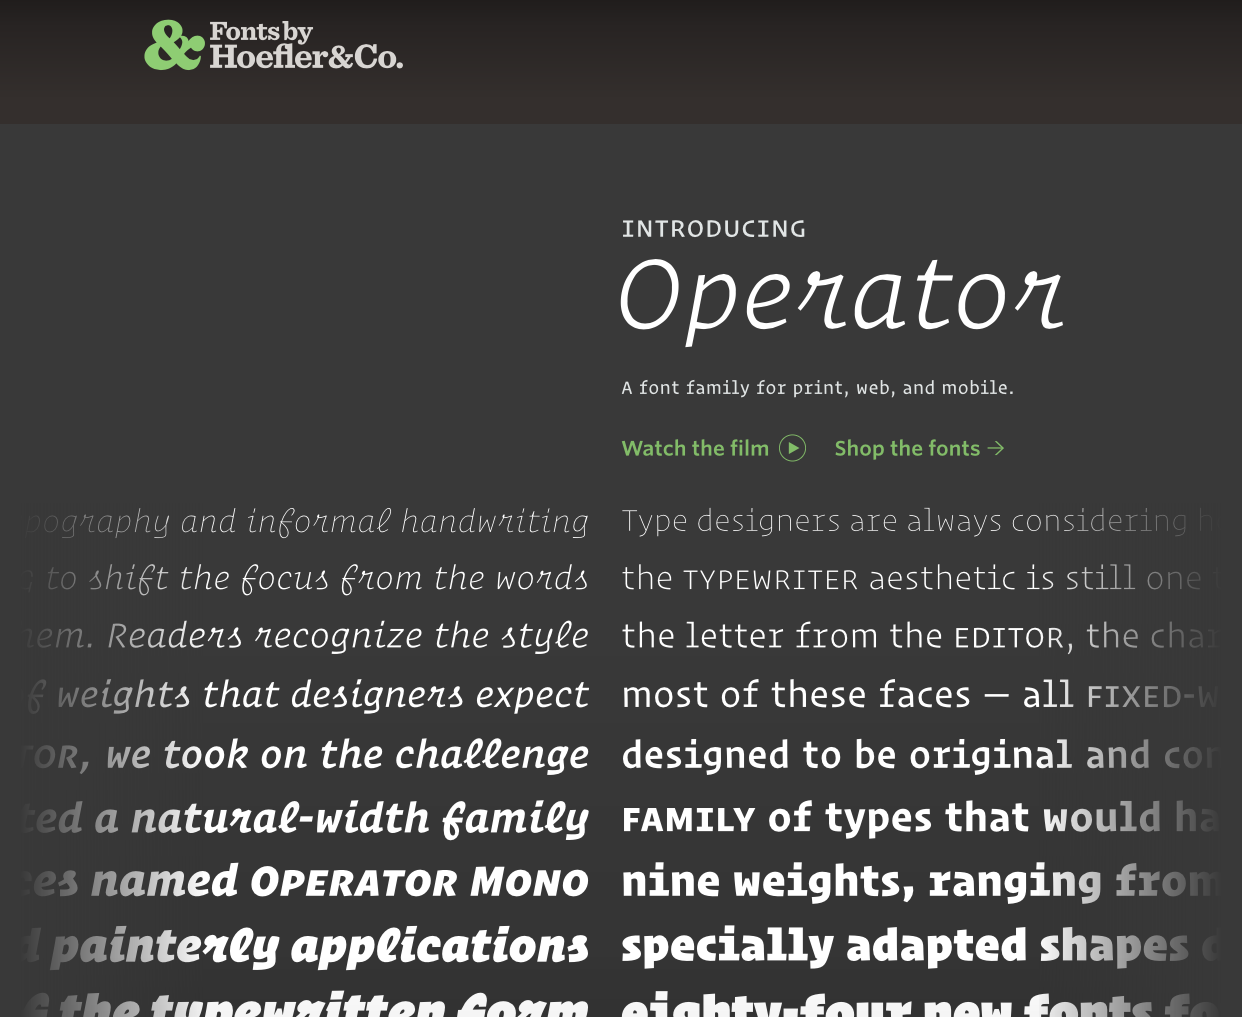 Operator Font by Hoefler & Co.